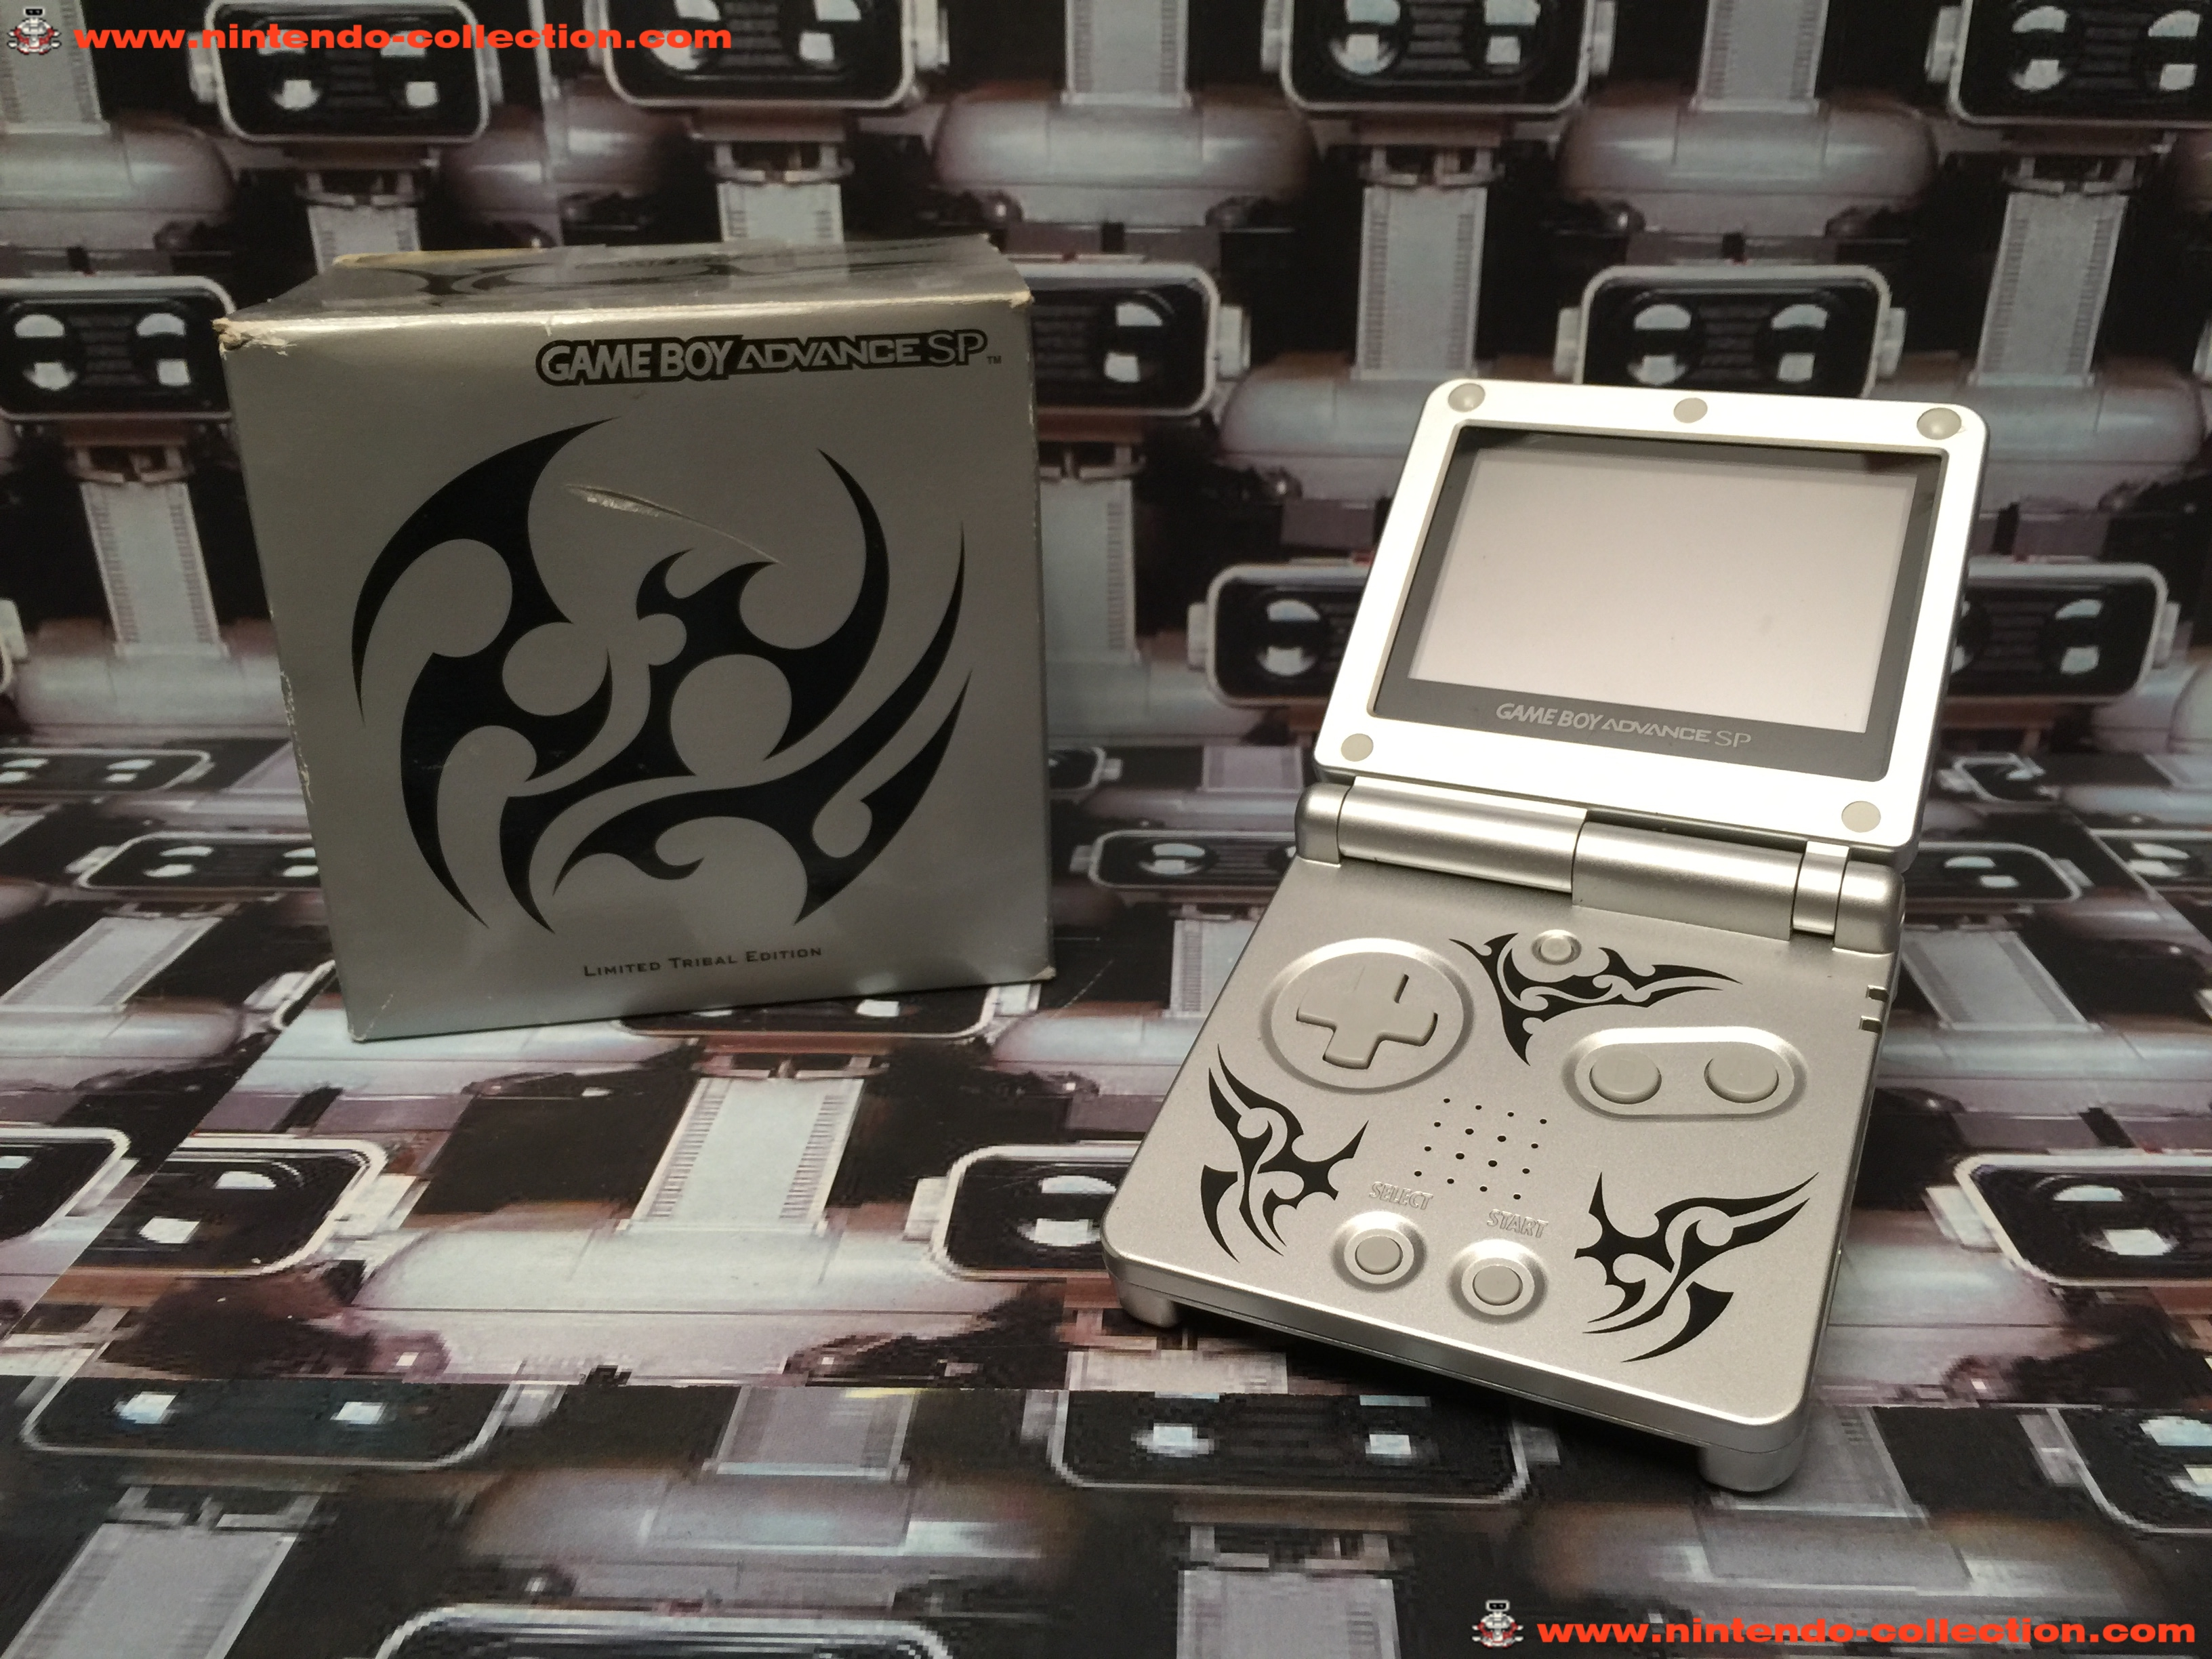 www.nintendo-collection.com - Gameboy Advance GBA SP Tribal Edition europeenne european - 02